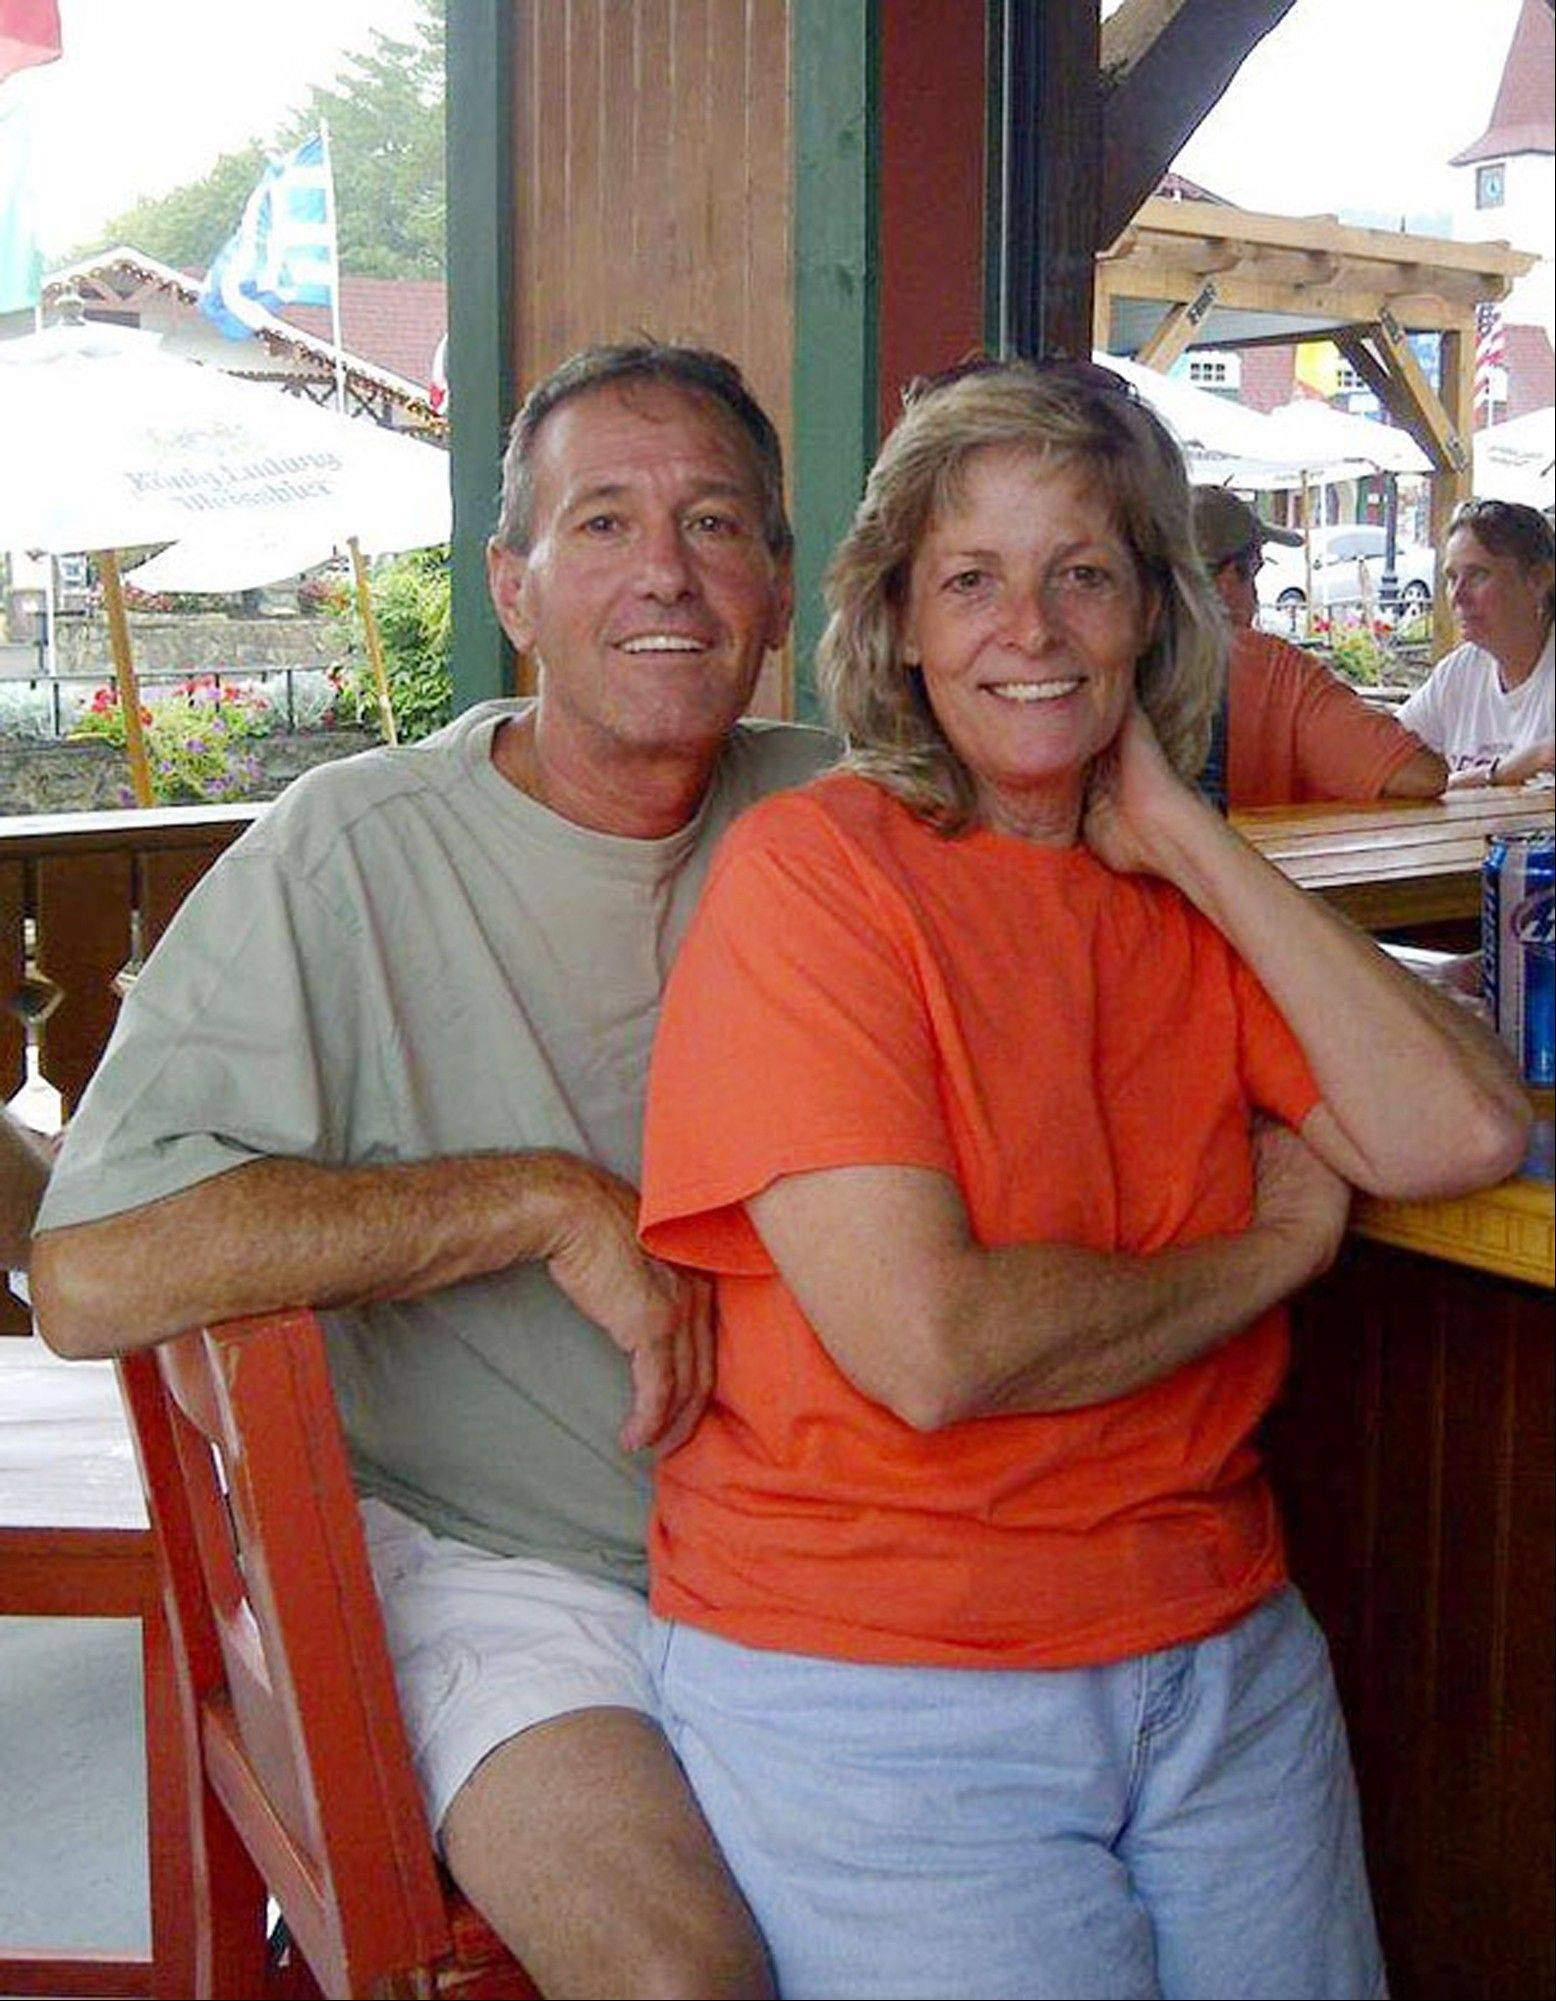 Patty Konietzky and her husband Henry �Butch� Konietsky after a tubing trip in Helen, Ga. Butch died 60 hours after contracting the bacteria vibrio vulnificus. The couple went crabbing in the Halifax River near Ormond Beach in September 2013. Butch developed a sore which was later confirmed to be vibrio vulnificus.